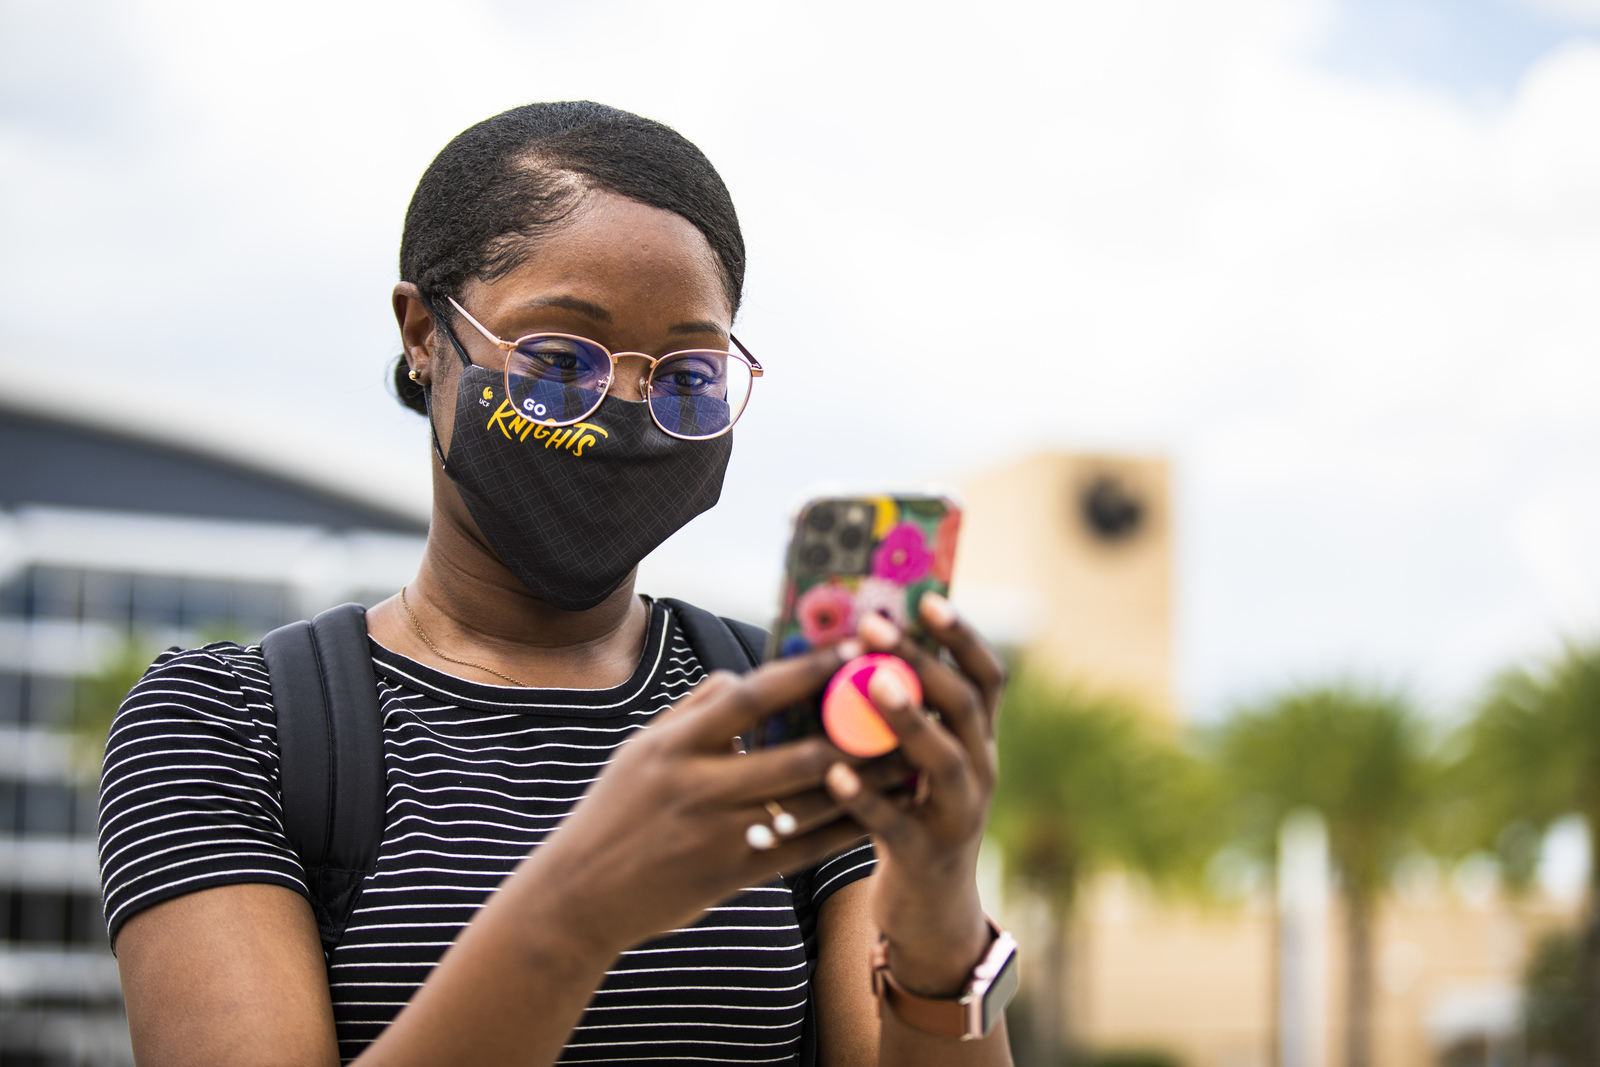 UCF Student on Phone